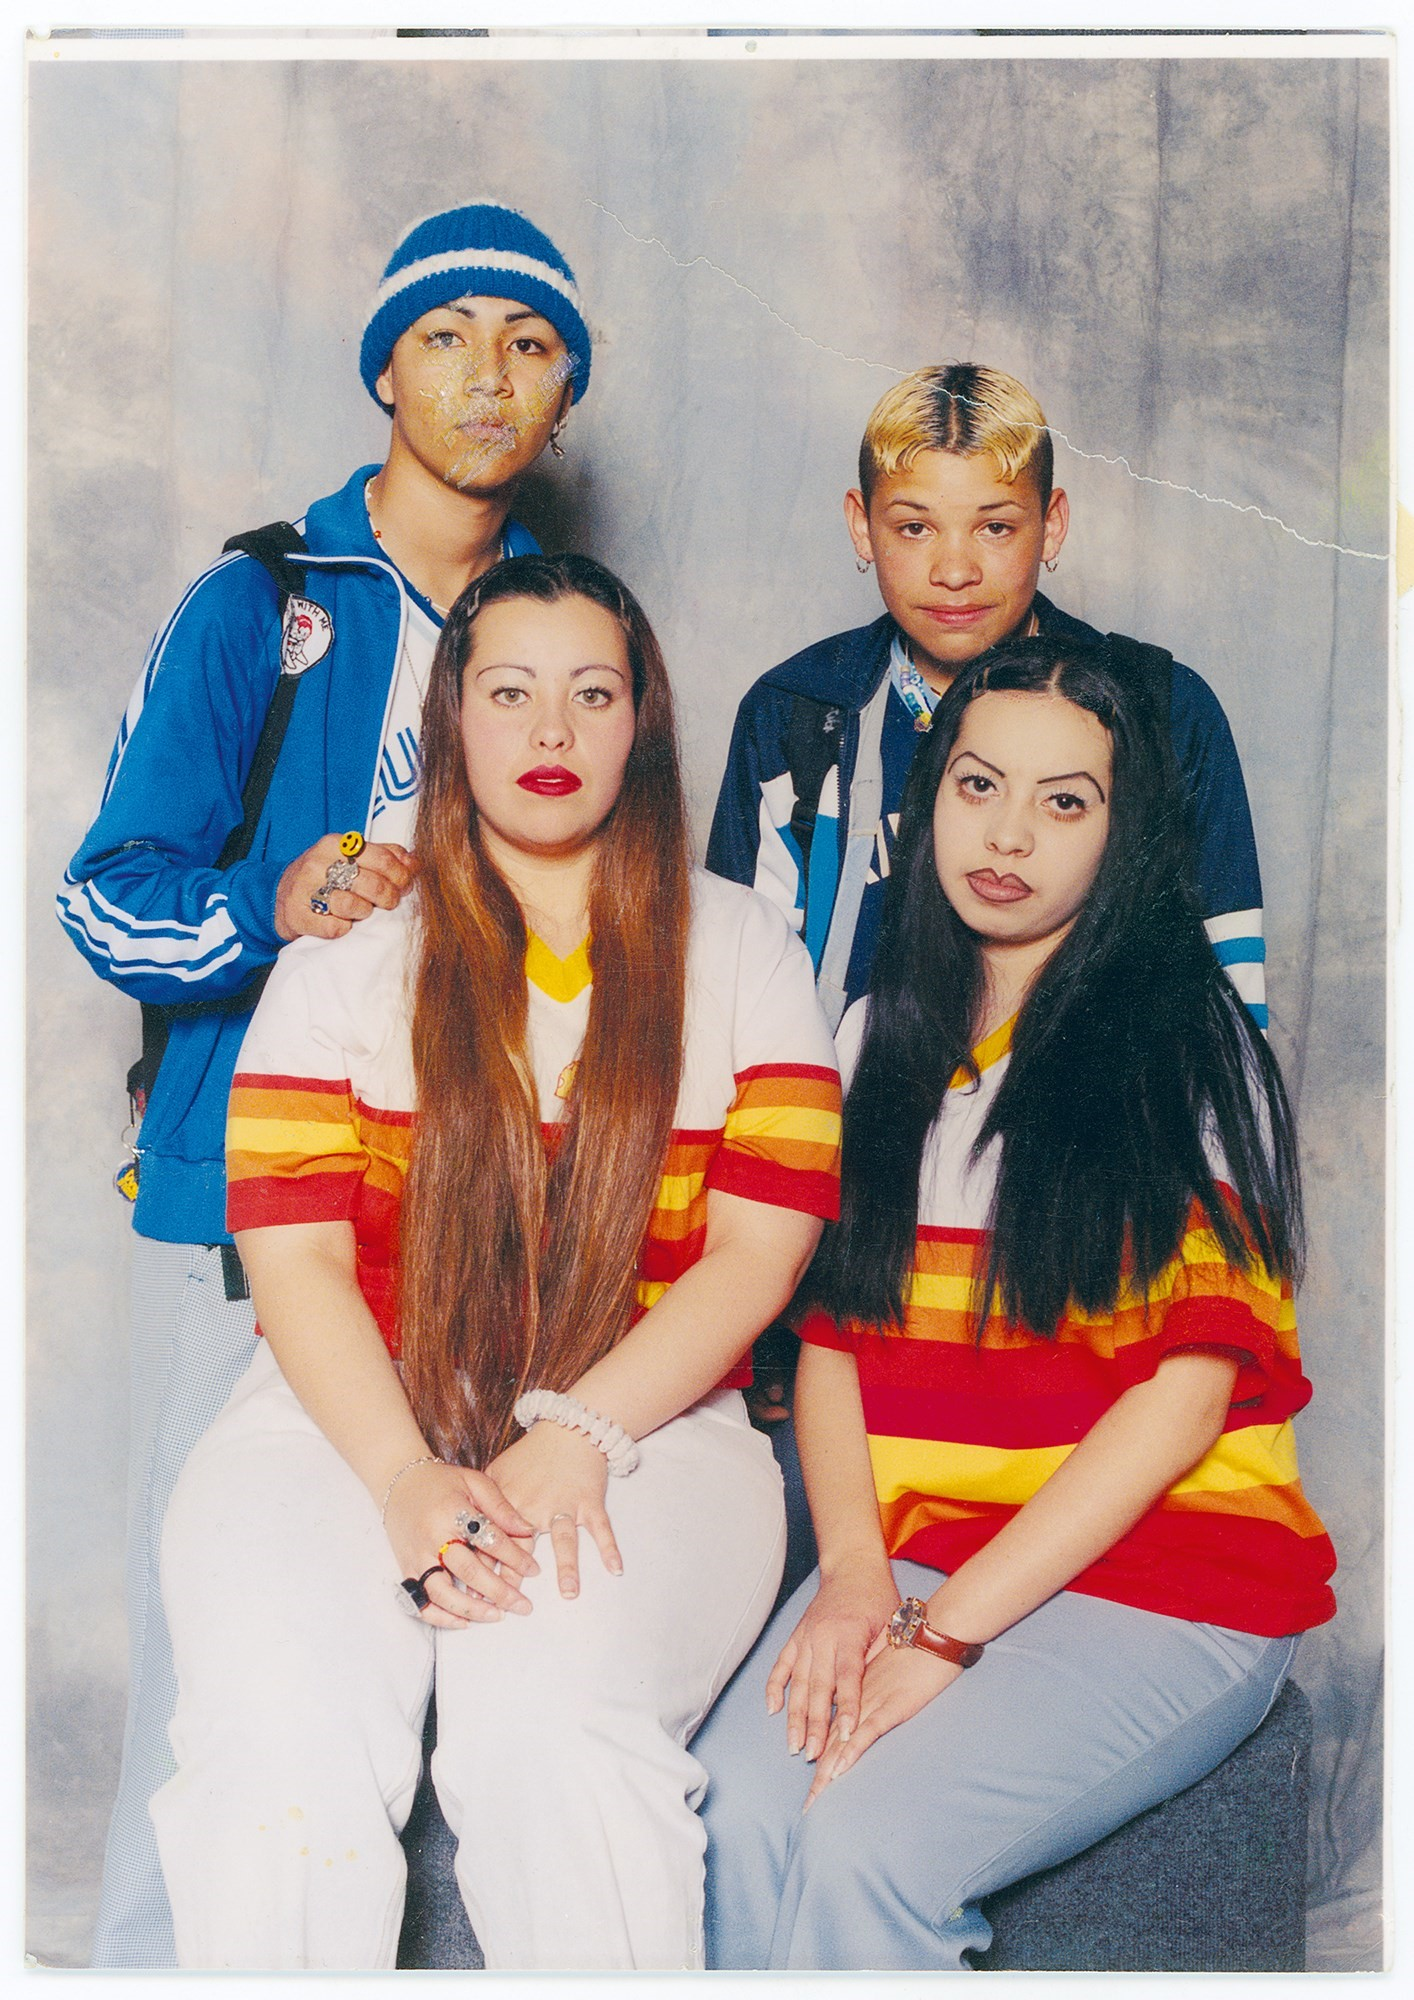 California's 1990s Chicano rave revolution as told through